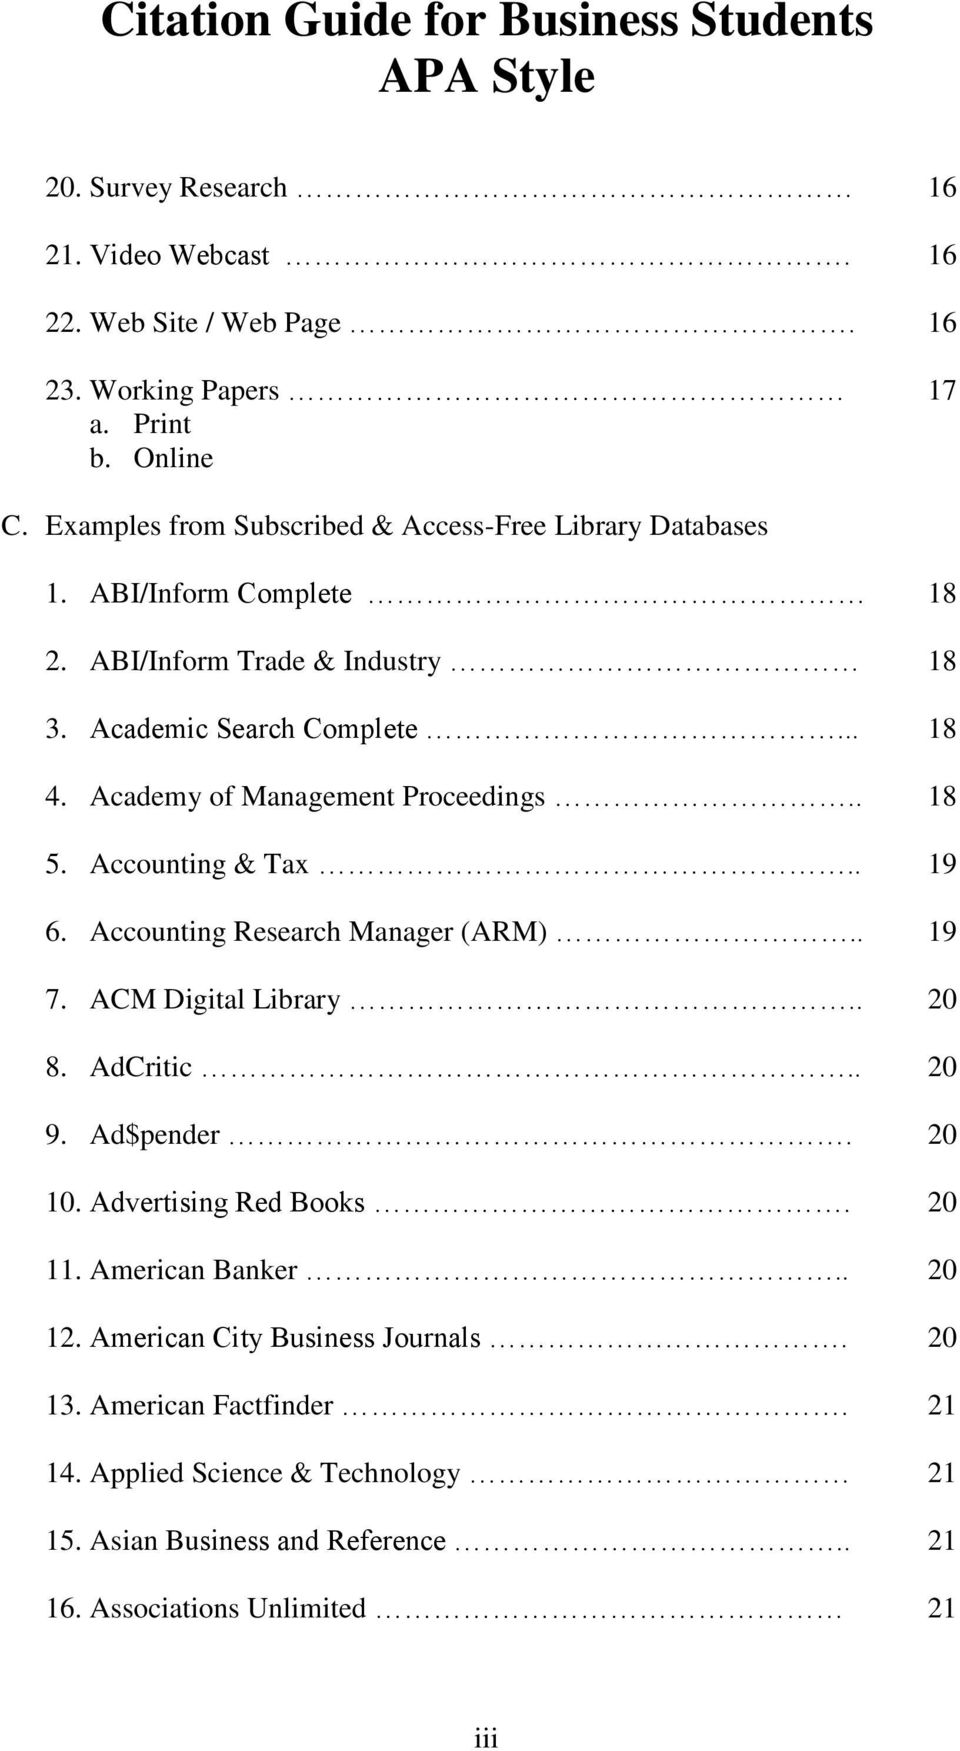 Academy of Management Proceedings.. 18 5. Accounting & Tax.. 19 6. Accounting Research Manager (ARM).. 19 7. ACM Digital Library.. 20 8. AdCritic.. 20 9. Ad$pender.